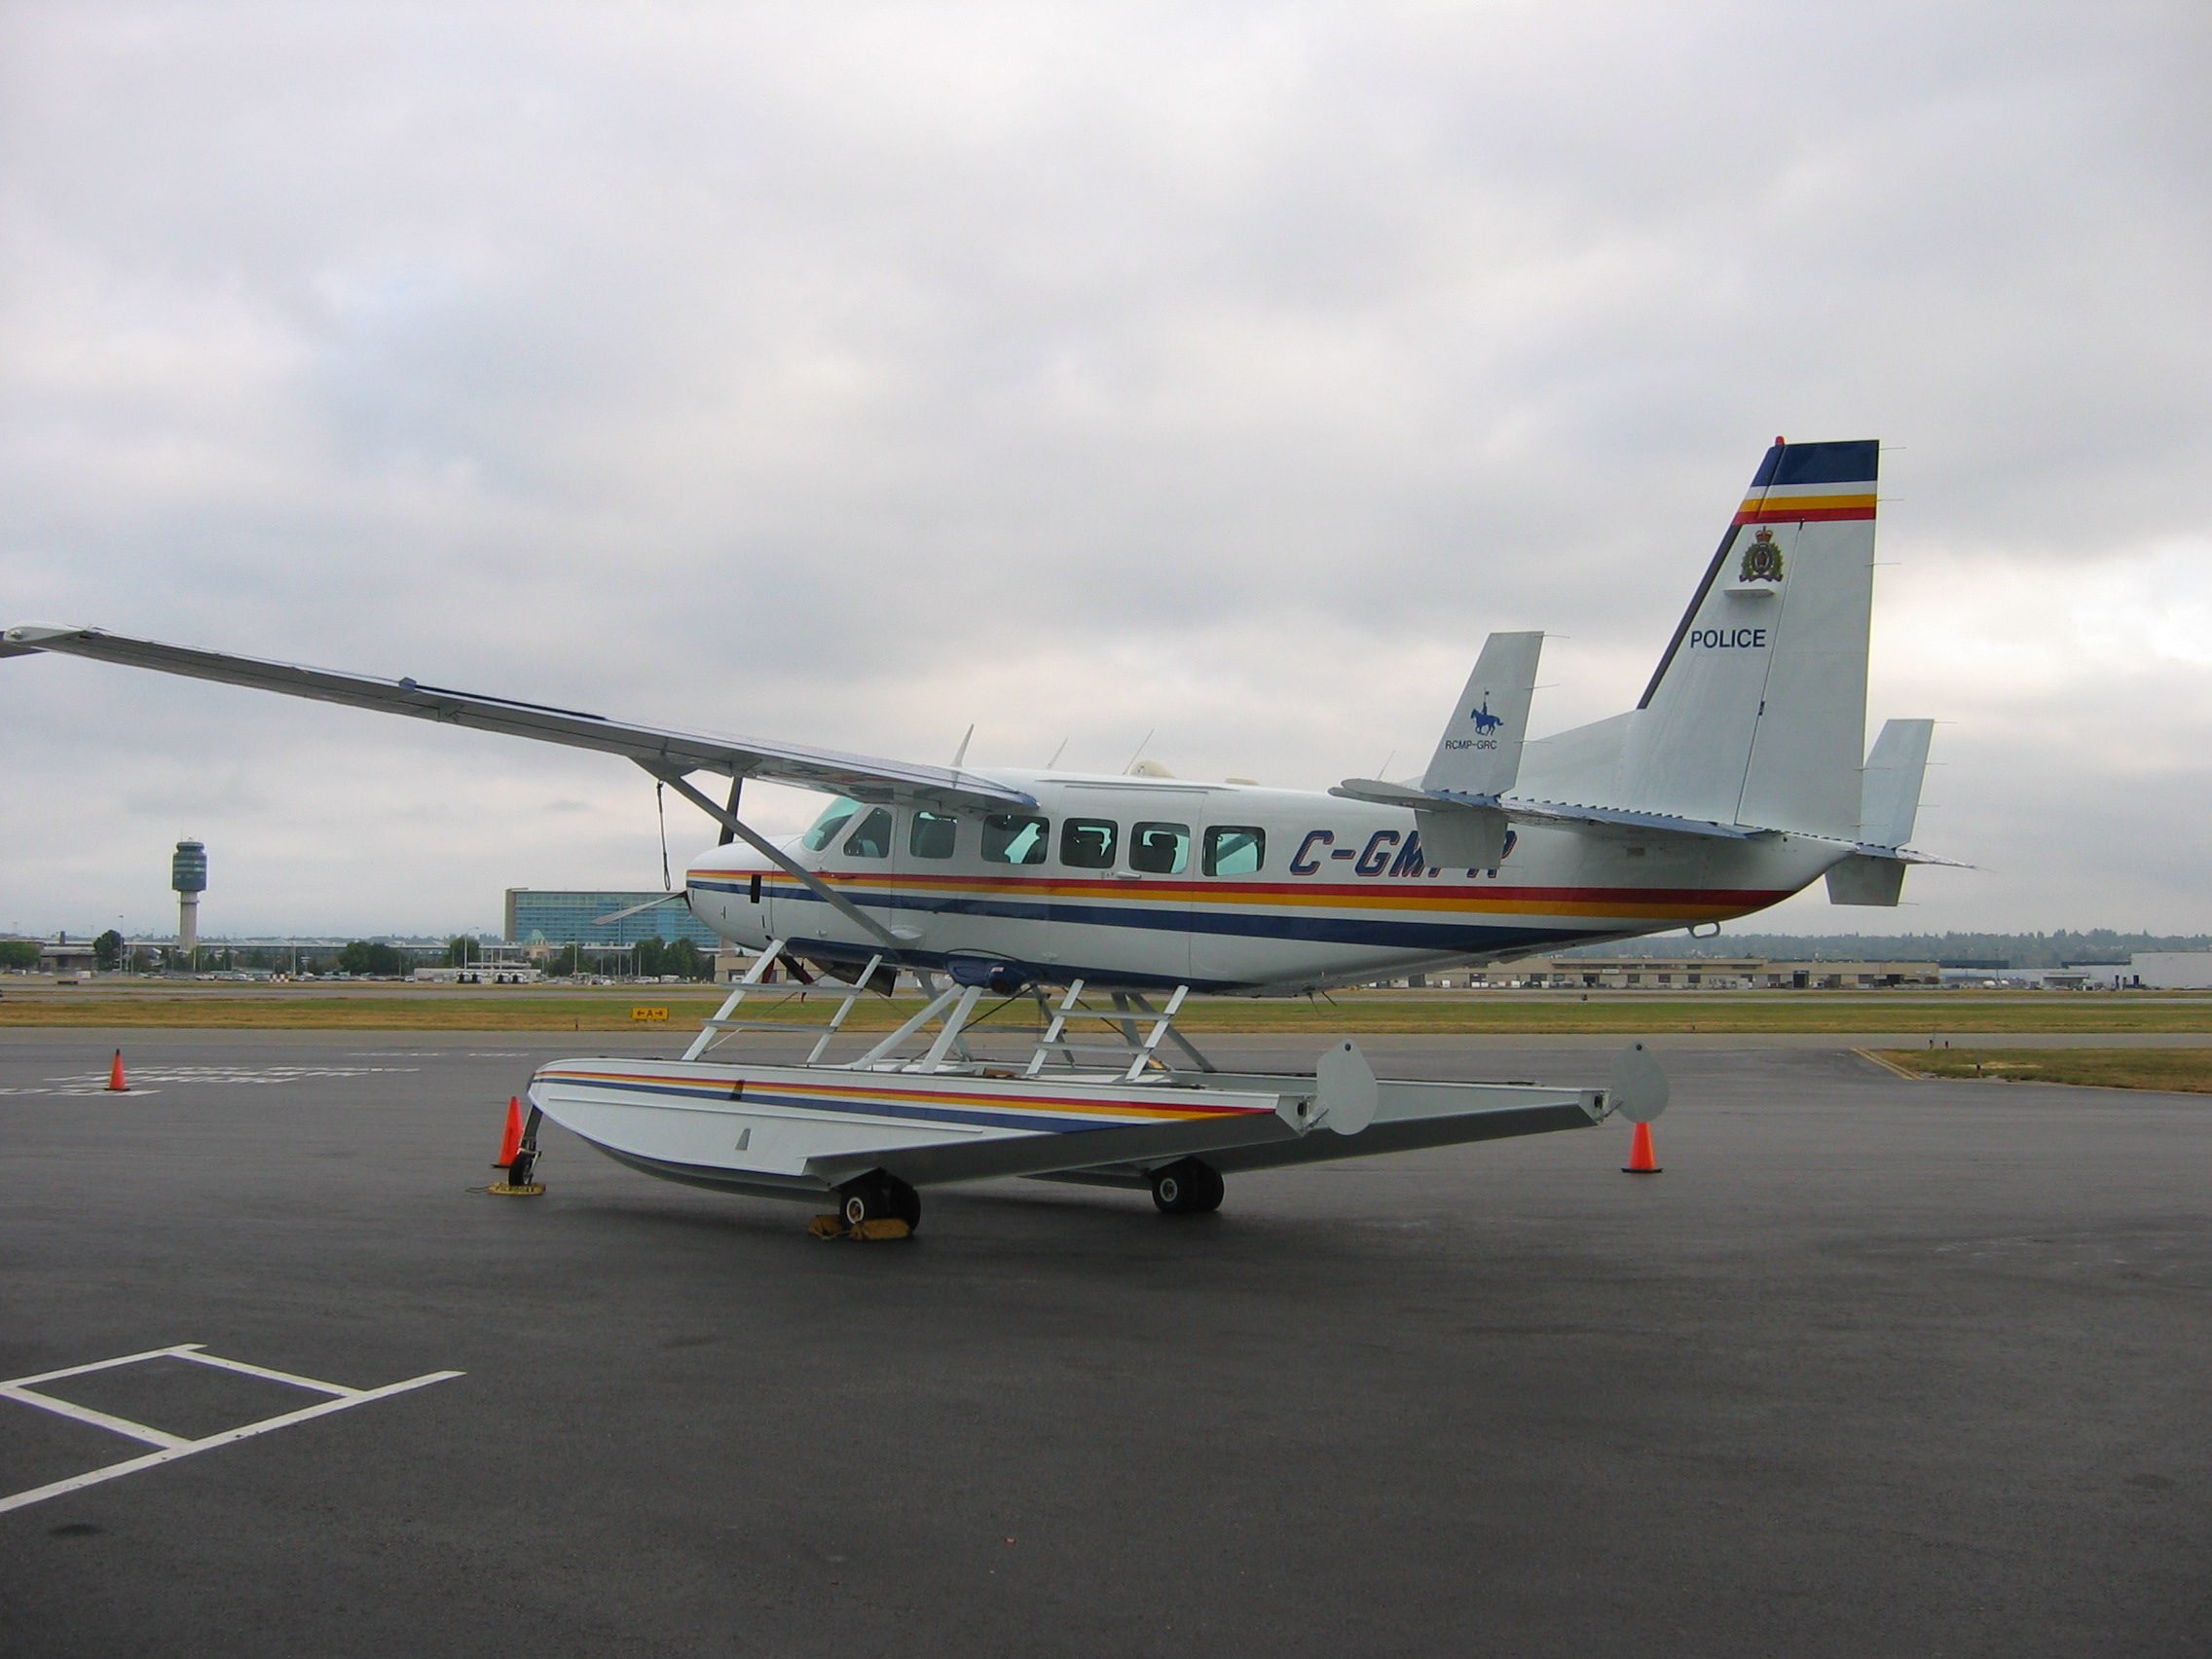 Cessna 208 Caravan - Cessna 208 Caravan with amphibious floats